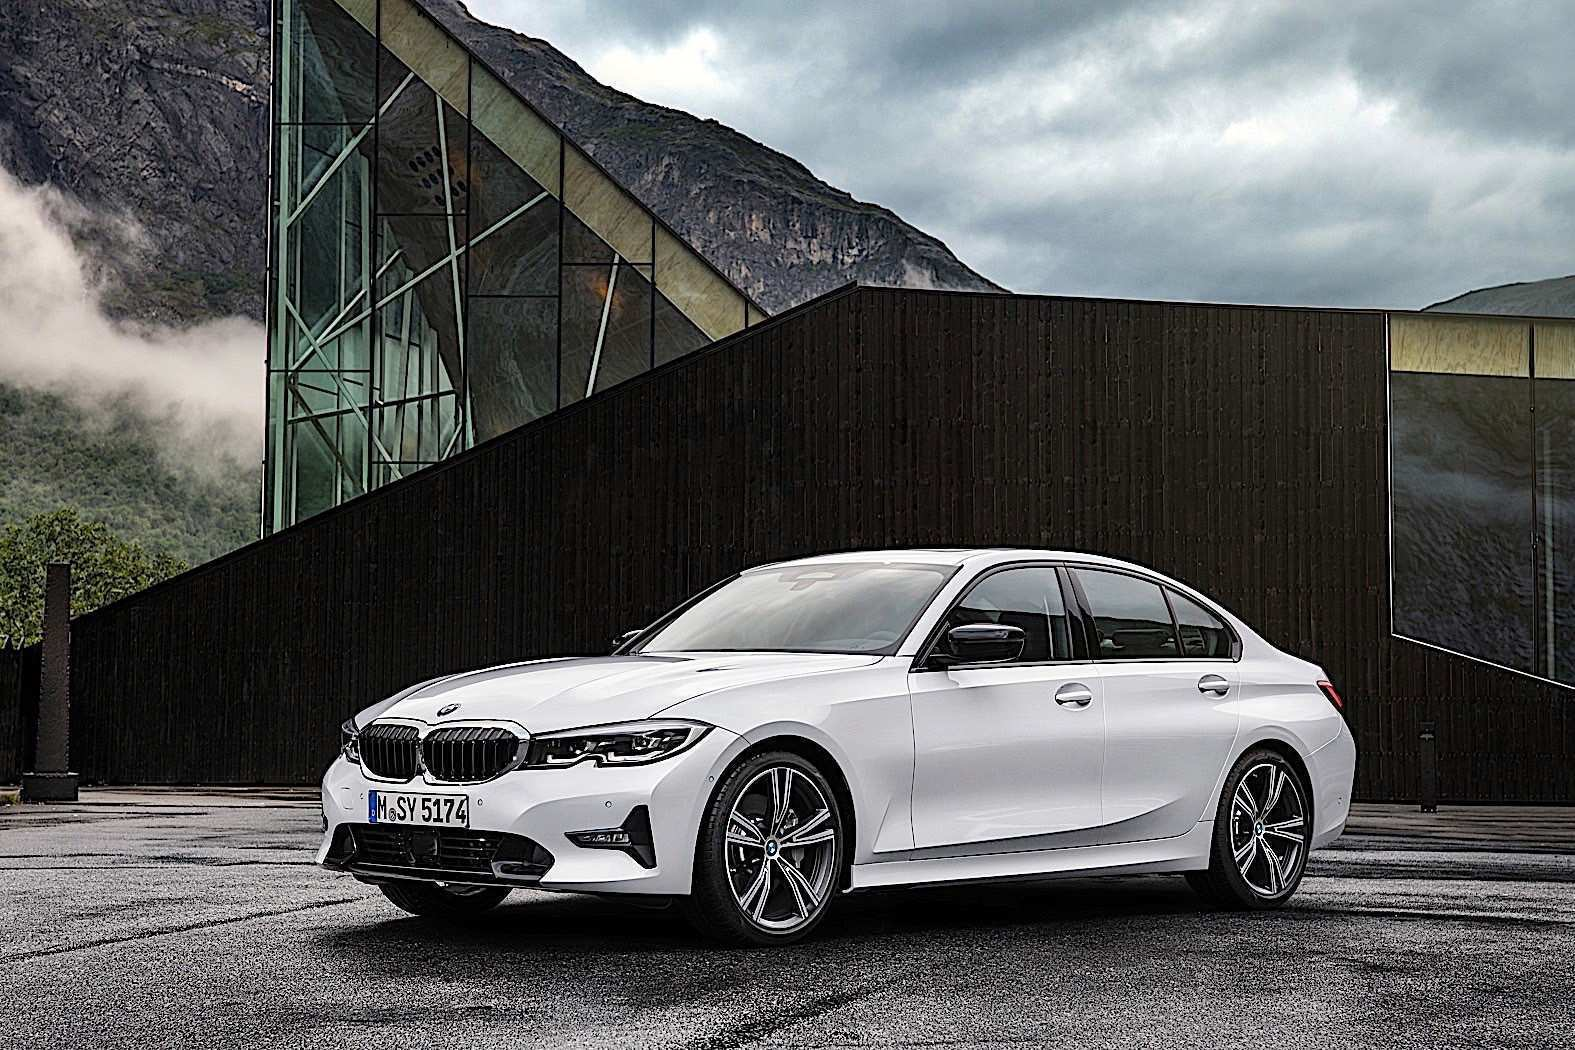 40 New 2020 BMW 3 Series Overview with 2020 BMW 3 Series